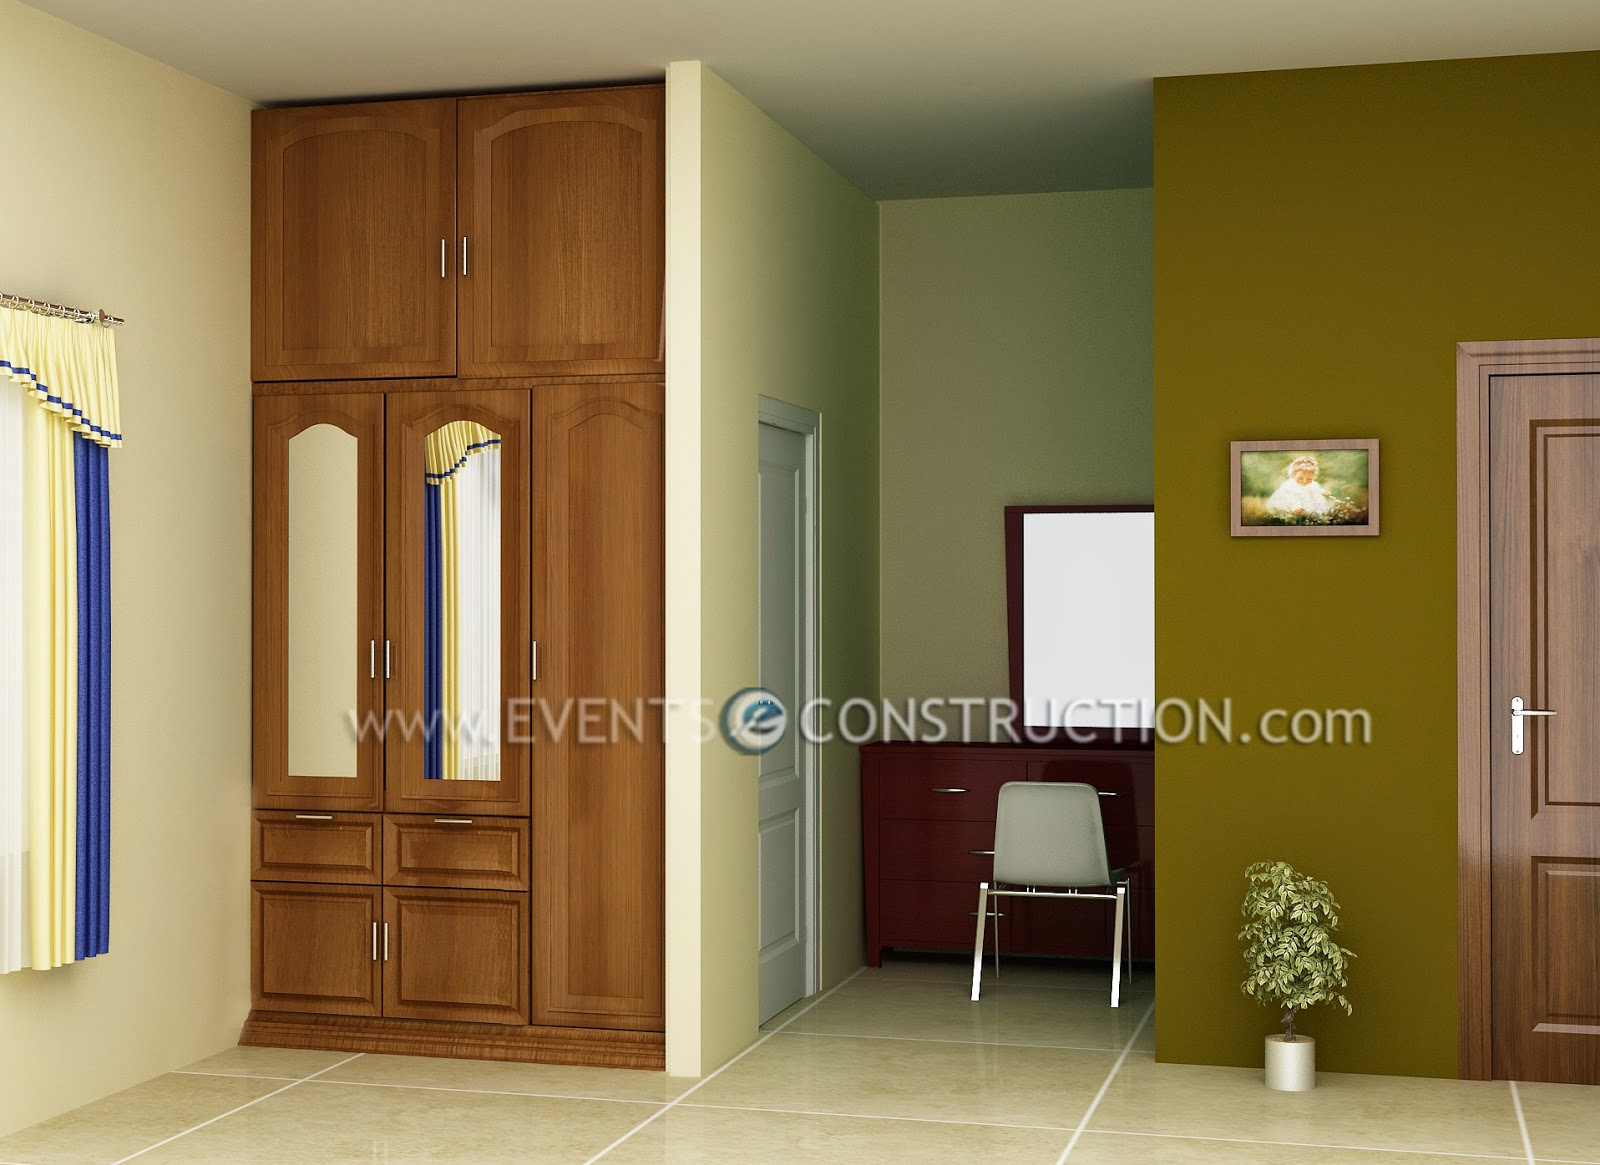 Evens construction pvt ltd dressing area and wooden wardrobe for Dressing area in bedroom